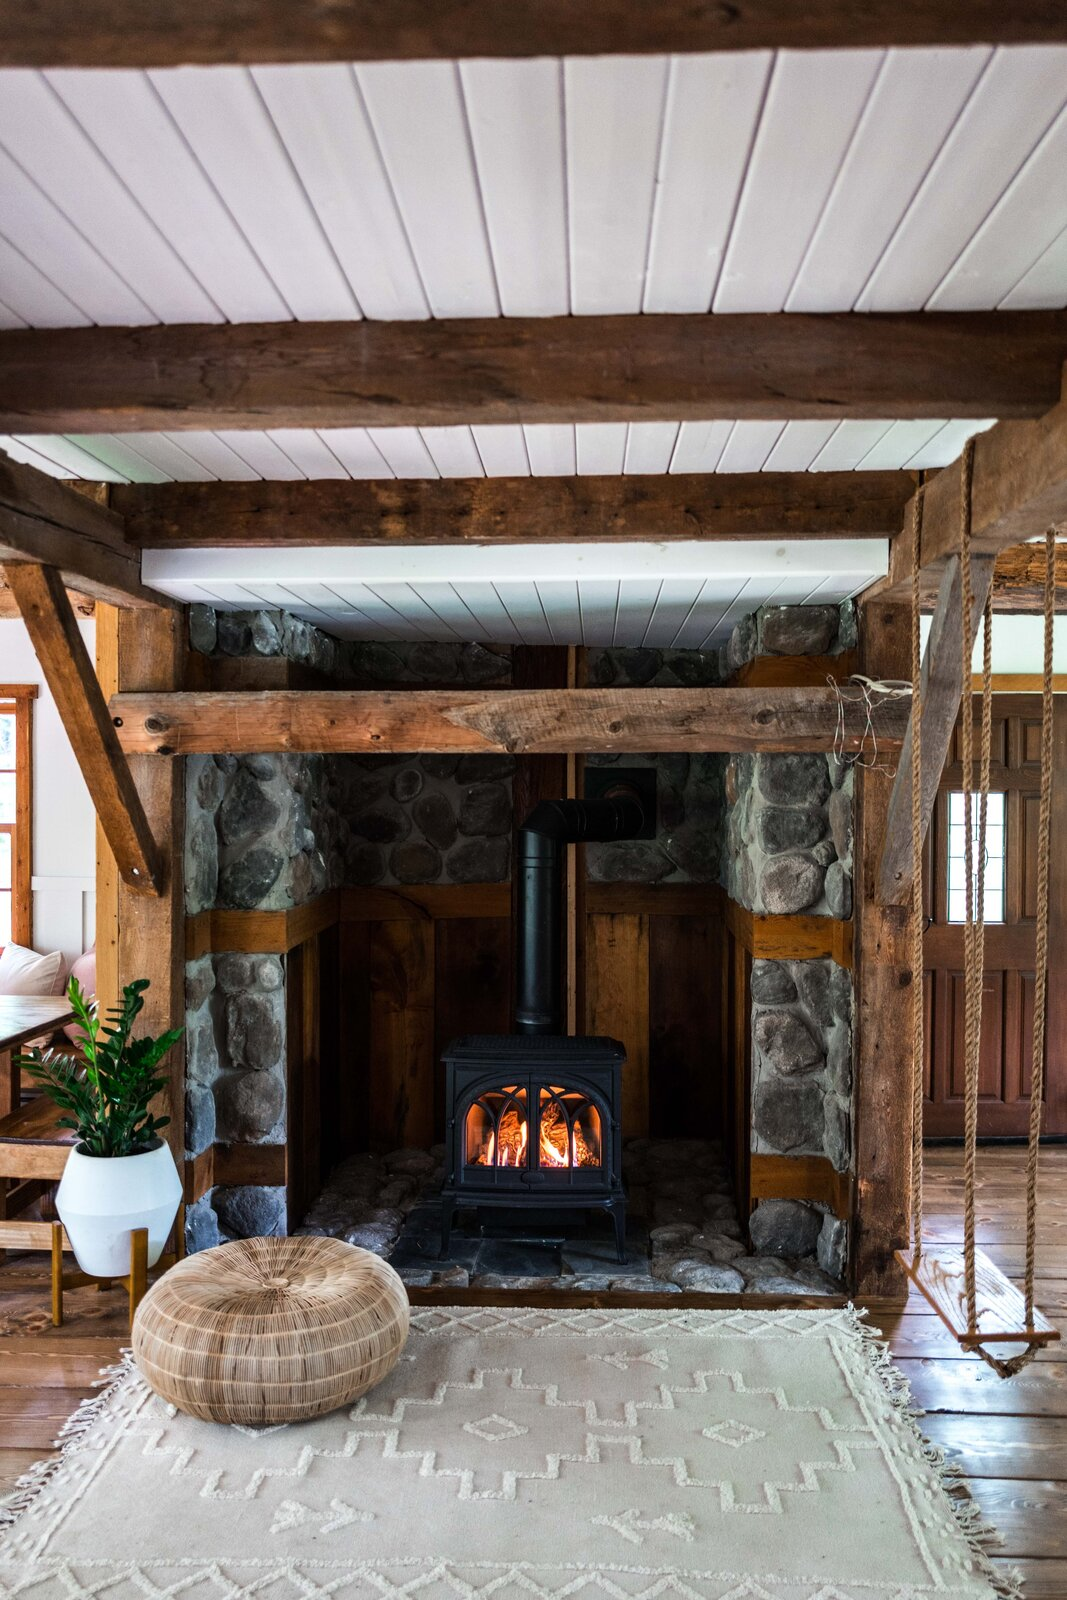 The Hunter Barnhouse by Danielle and Ely Franko wood-burning stove and indoor swing